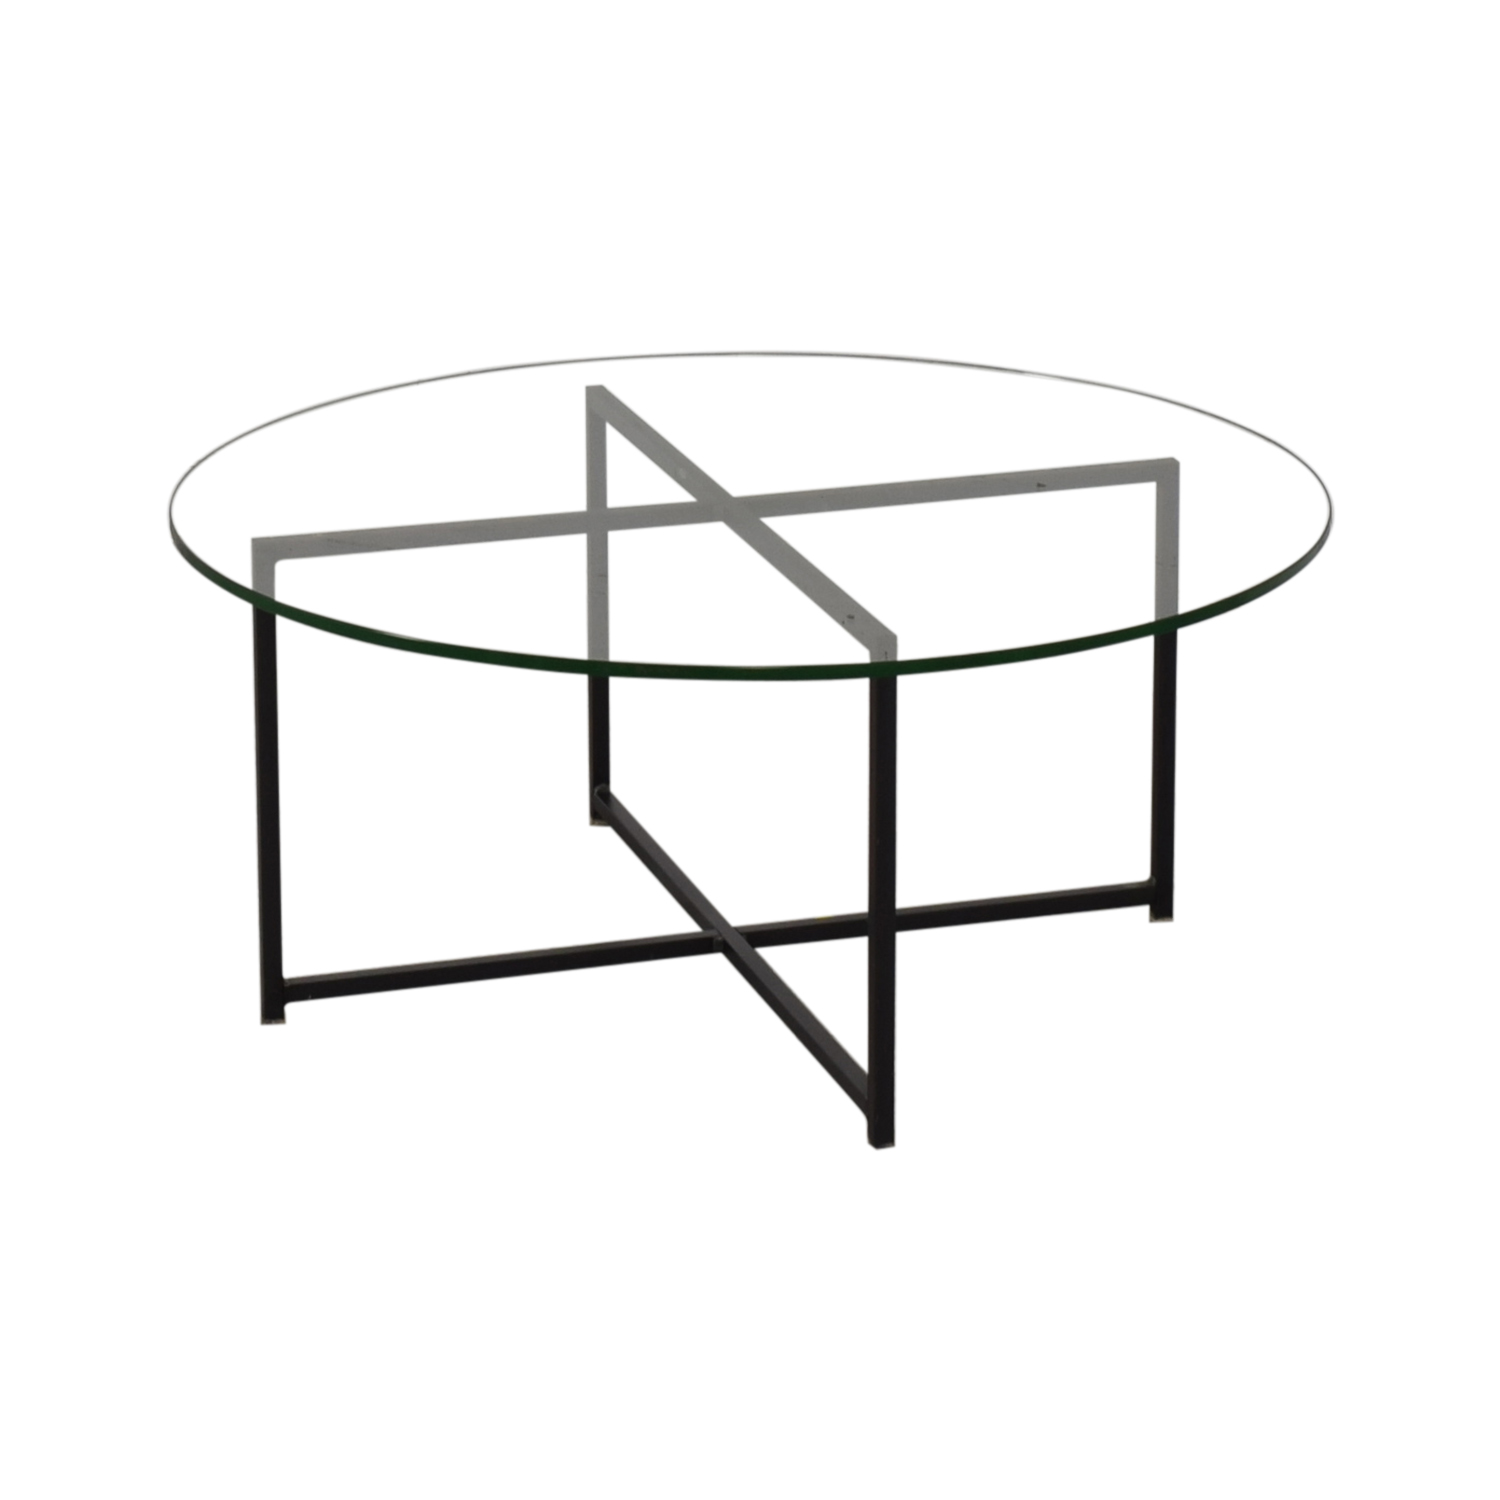 Room & Board Room & Board Classic Coffee Table in Natural Steel dimensions